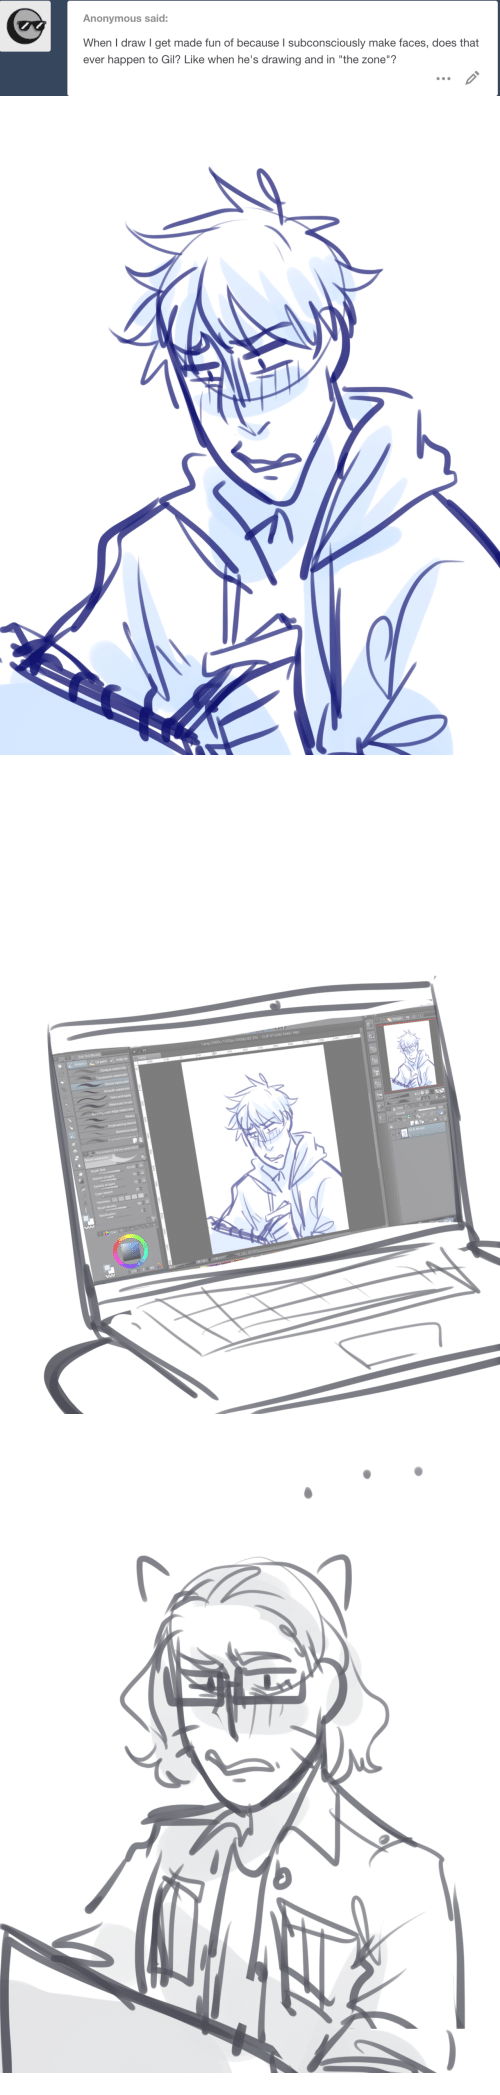 """Anonymous, Paint, and Pro: Anonymous said:  When I draw I get made fun of because I subconsciously make faces, does that  ever happen to Gil? Like when he's drawing and in """"the zone""""?   . CLIP STUDIO PAINT PRO  1png (1300 x 1700px 300dpi 822%)  40.00  70  90  89"""